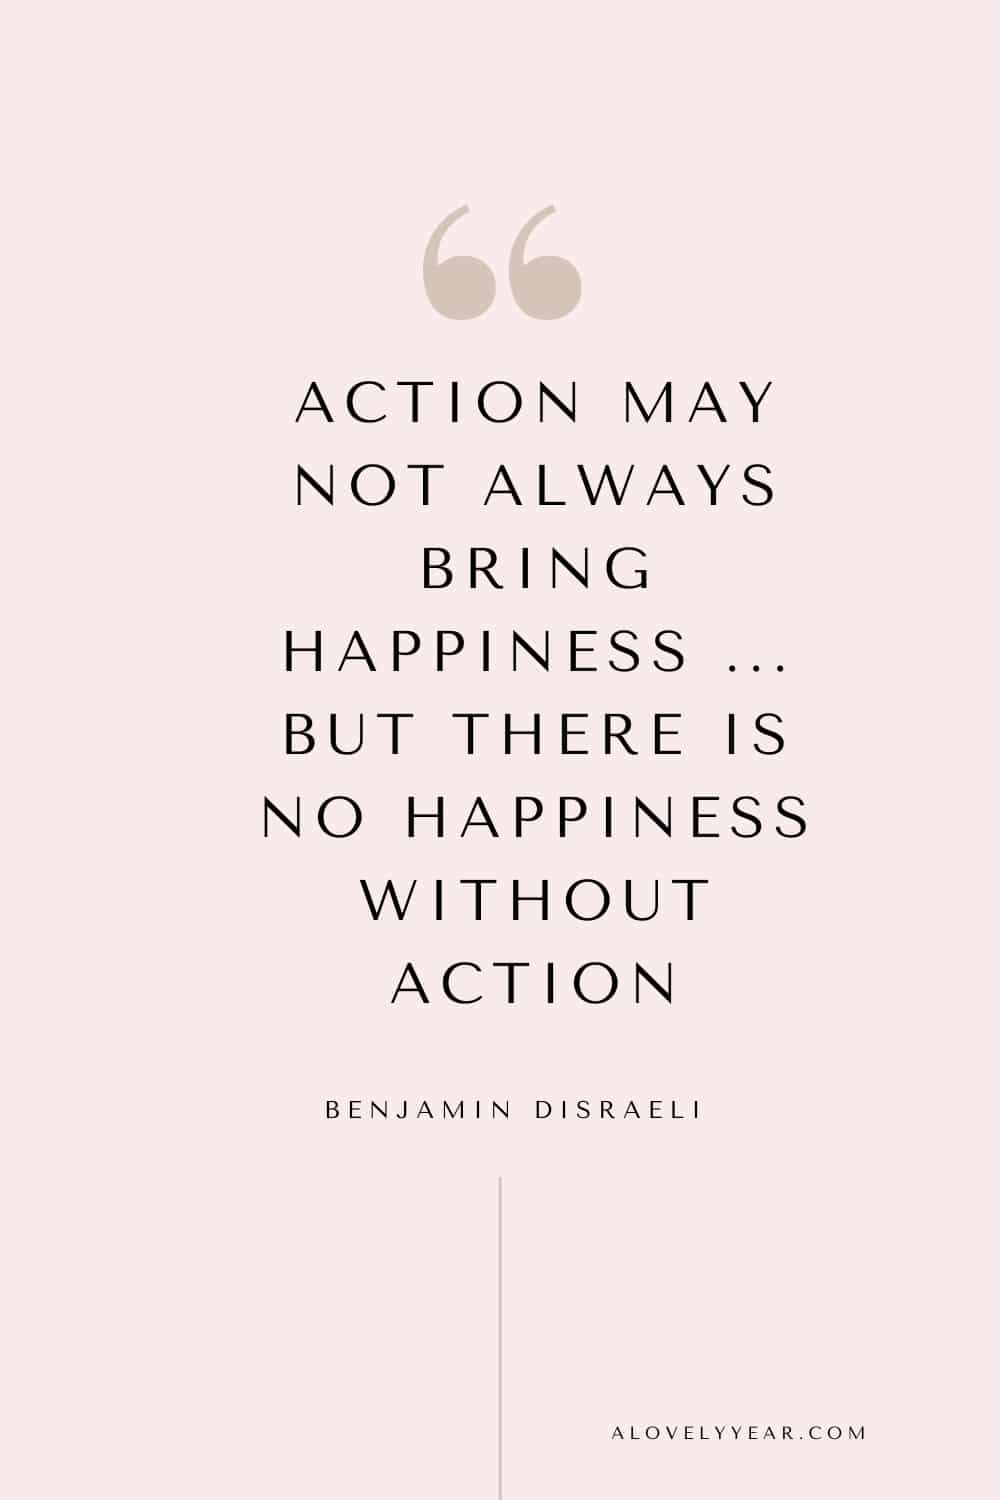 Get things done quote - Action may not always bring happiness ... but there is no happiness without action. - Benjamin Disraeli